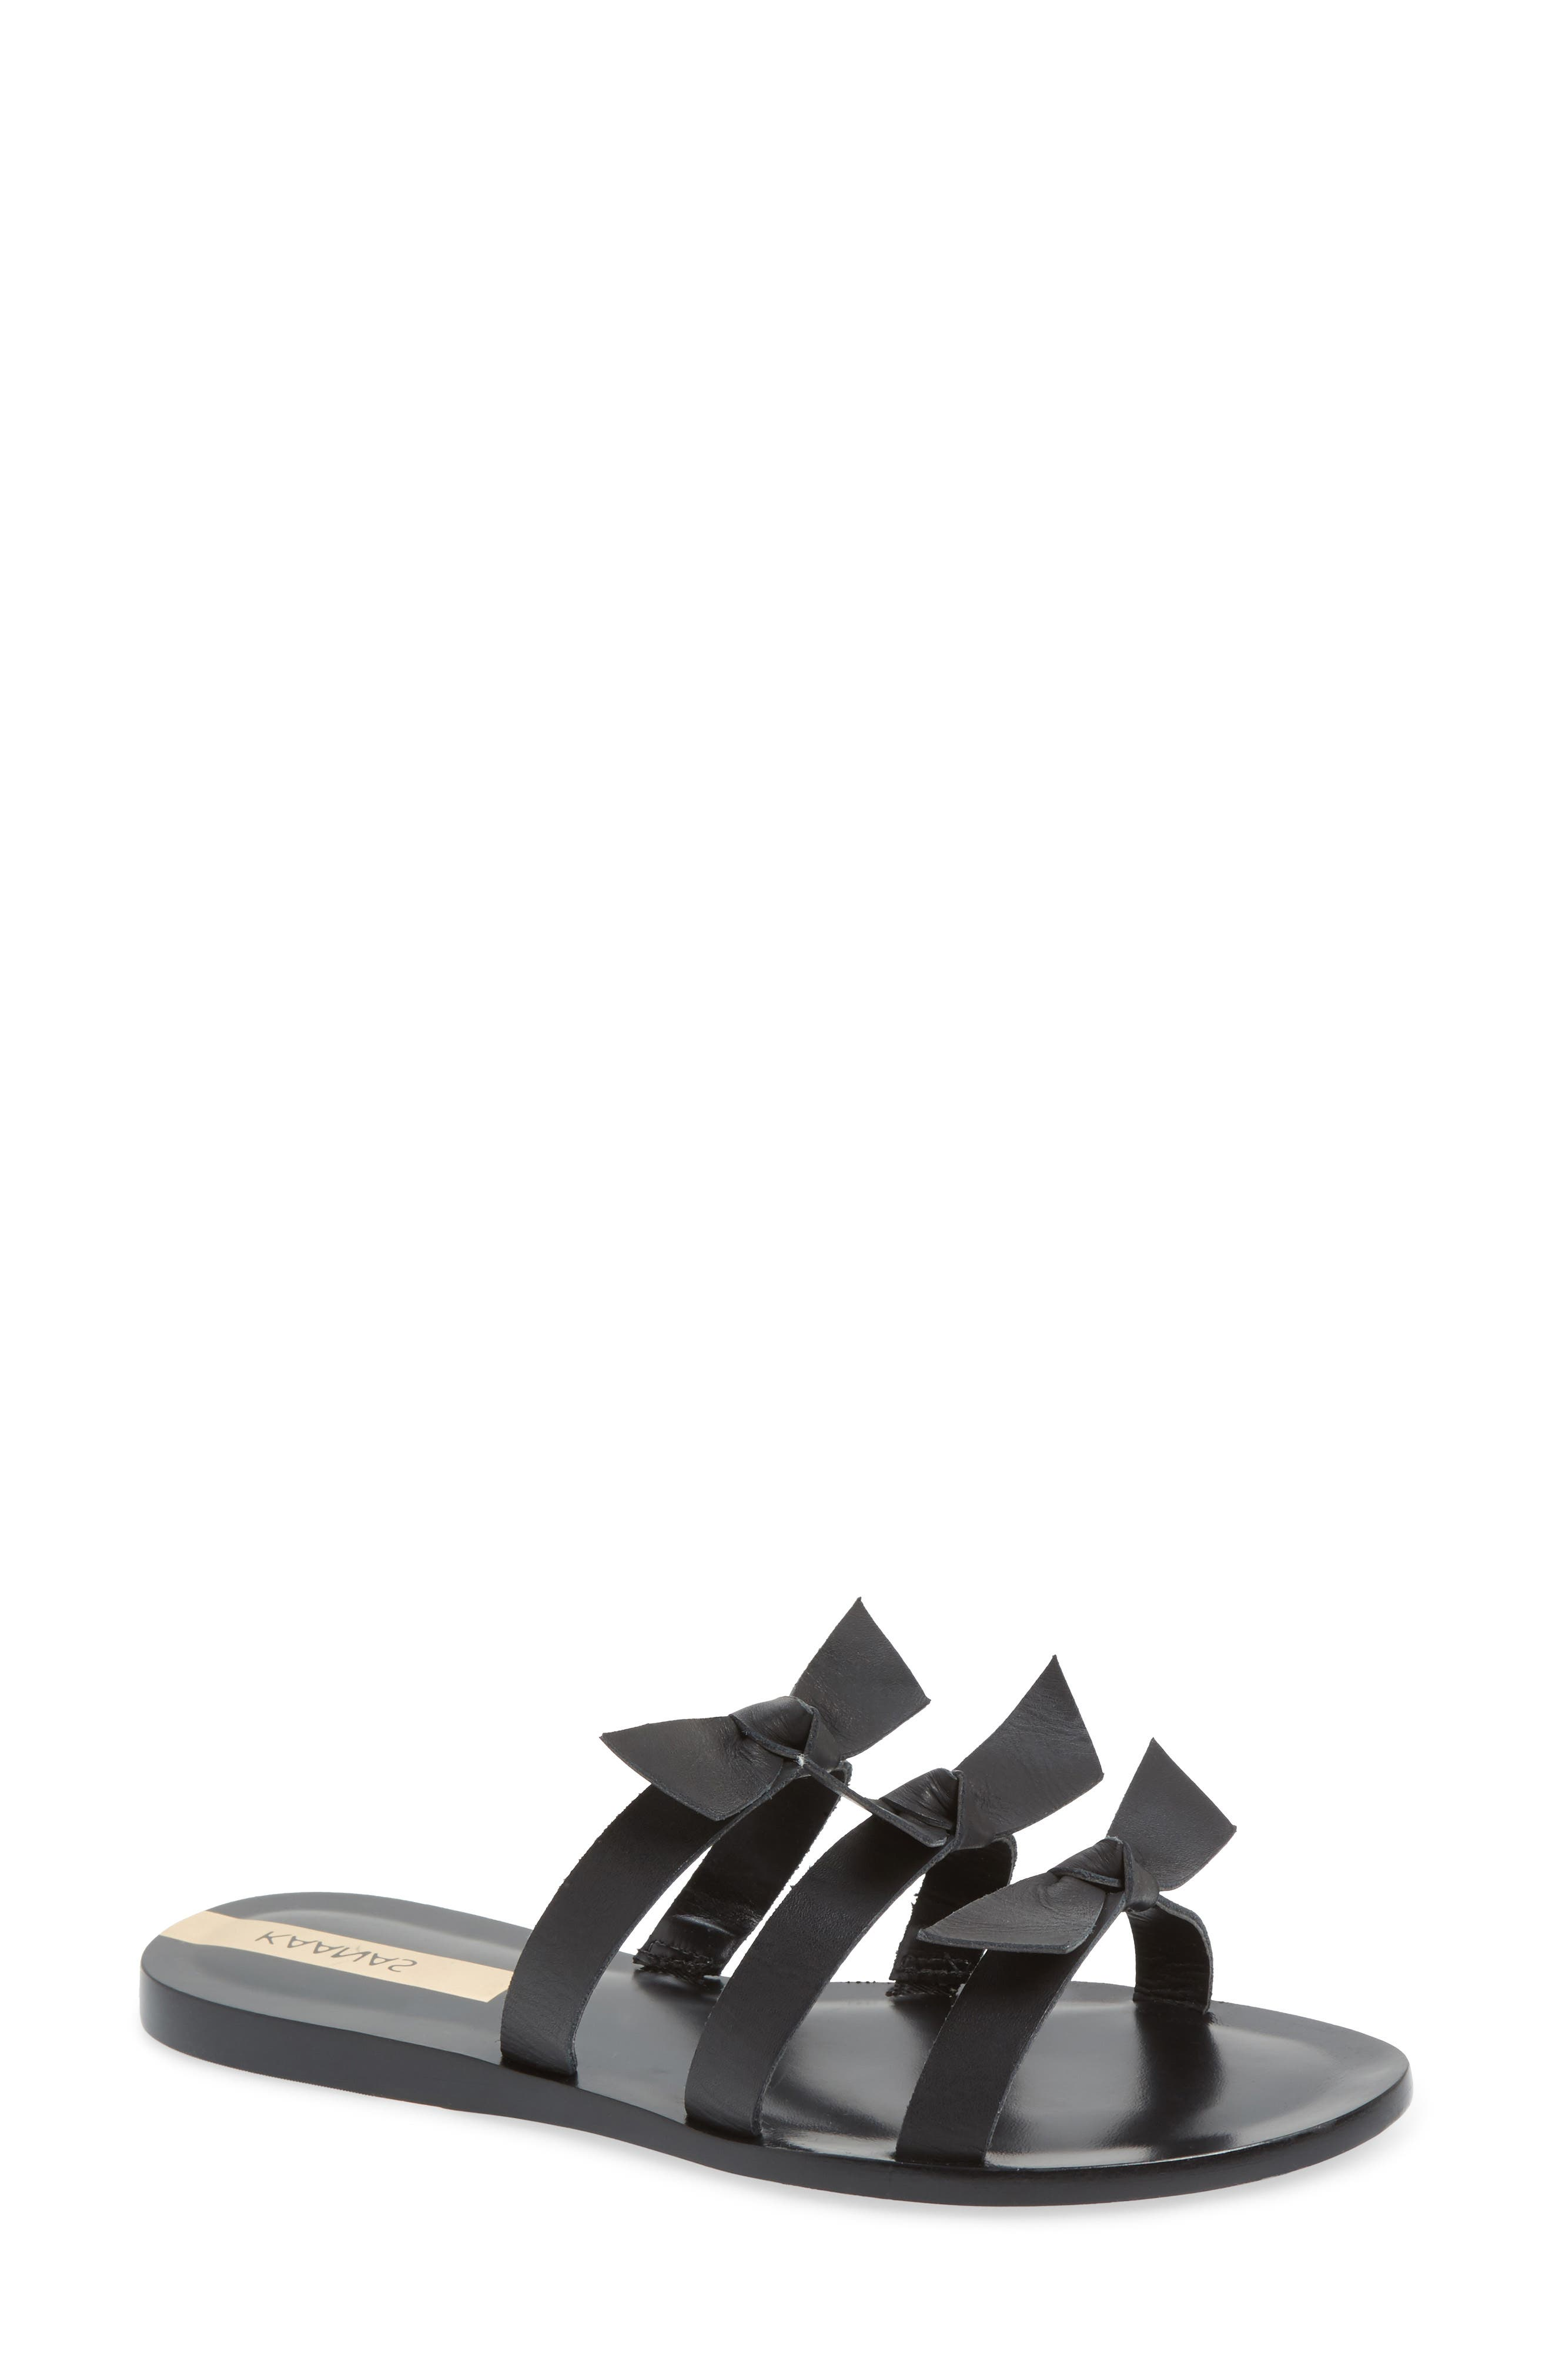 Recife Knotted Slide Sandal,                             Main thumbnail 1, color,                             BLACK